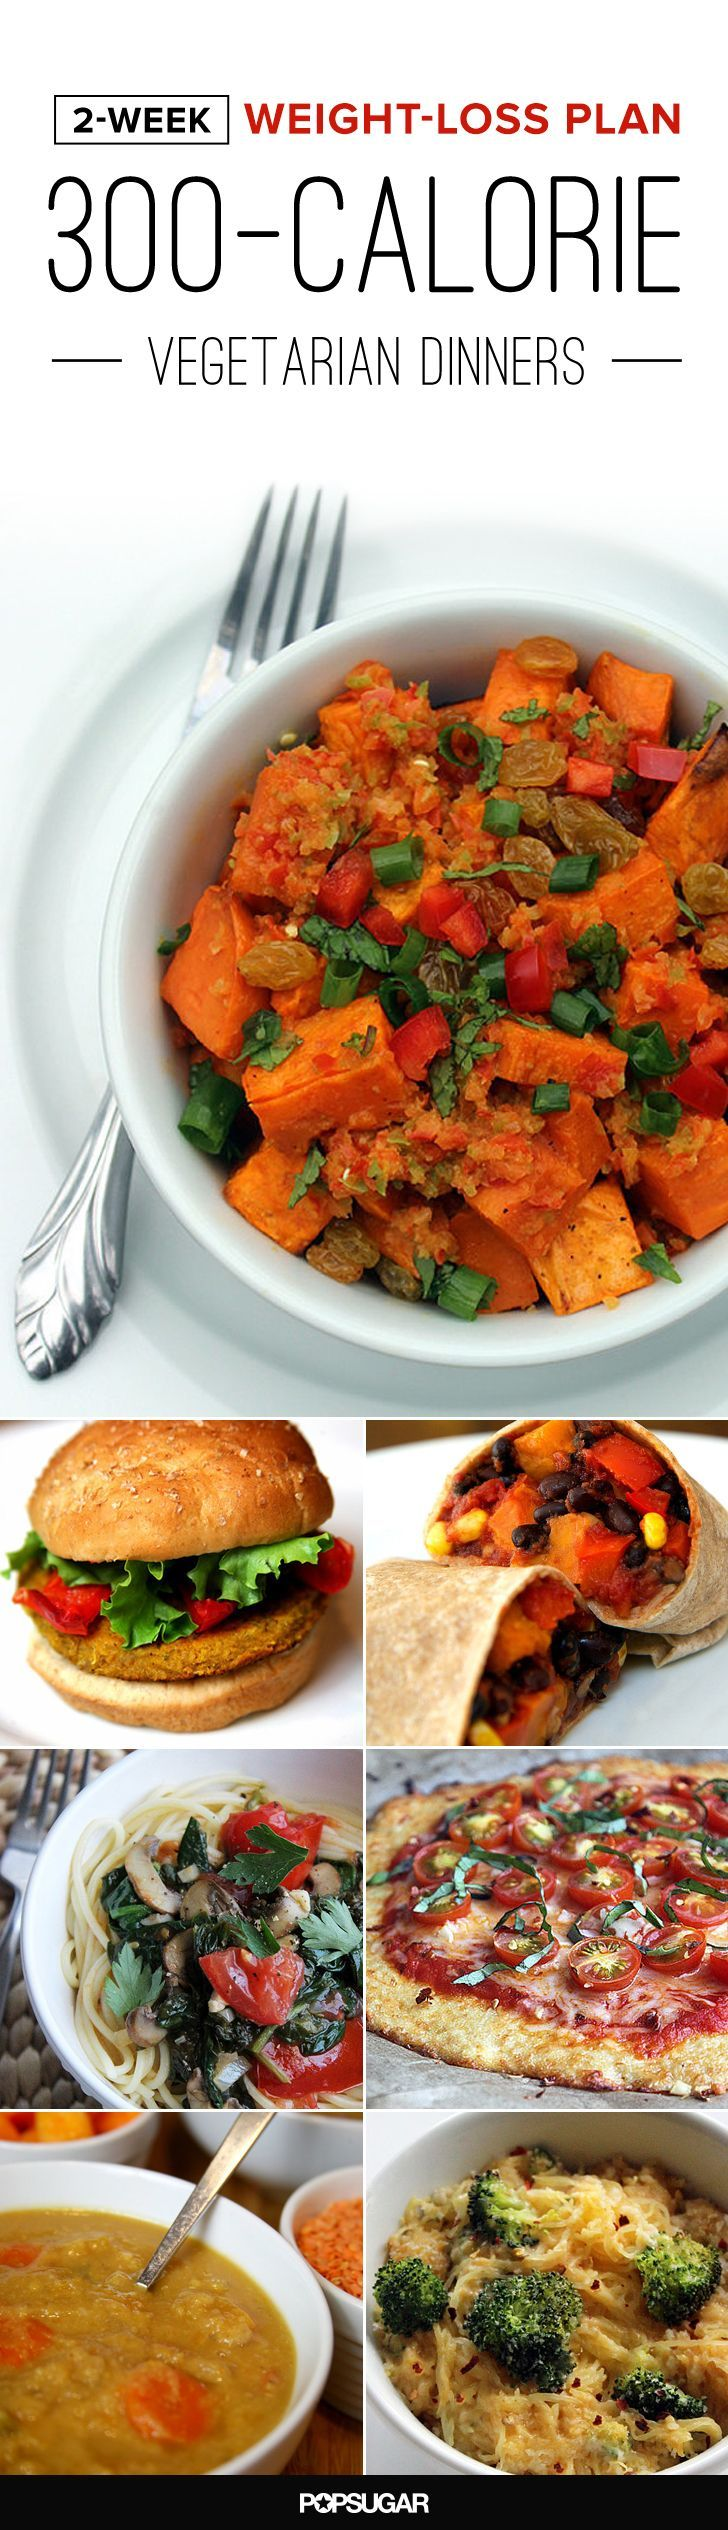 2-Week Weight-Loss Plan: #Vegetarian Dinners Under 300 Calories #weightloss